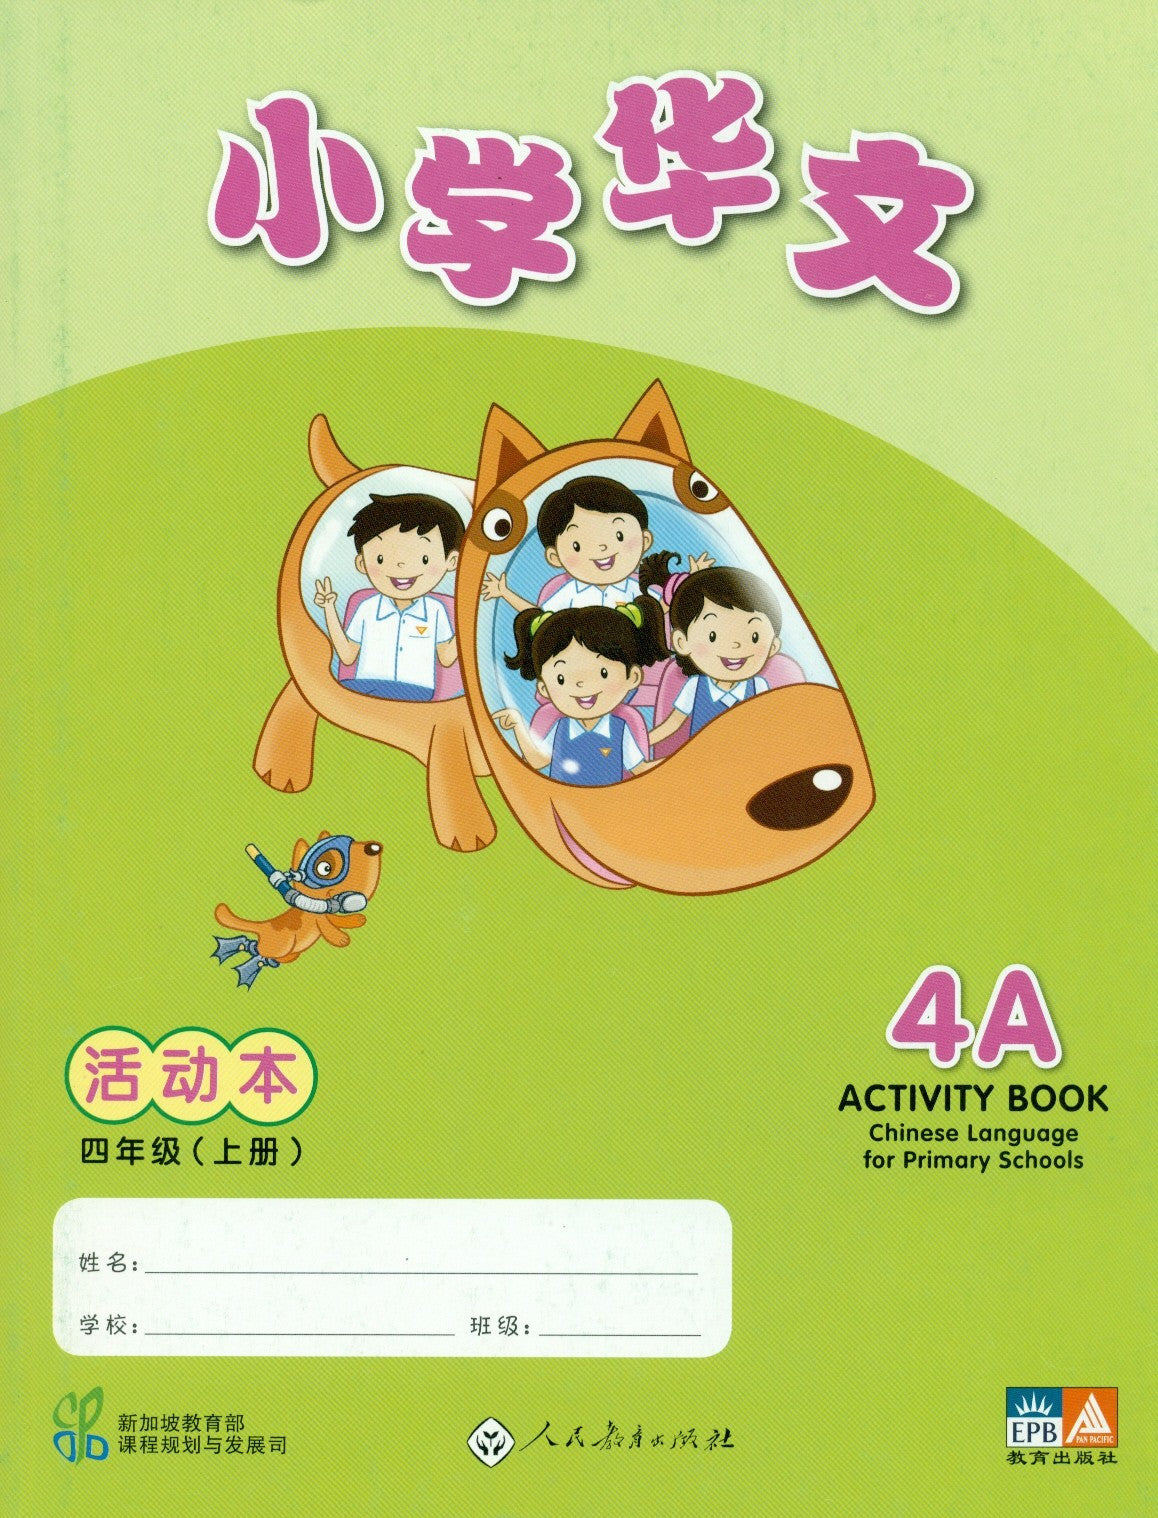 Chinese Language for Primary Schools: Activity Book 4A